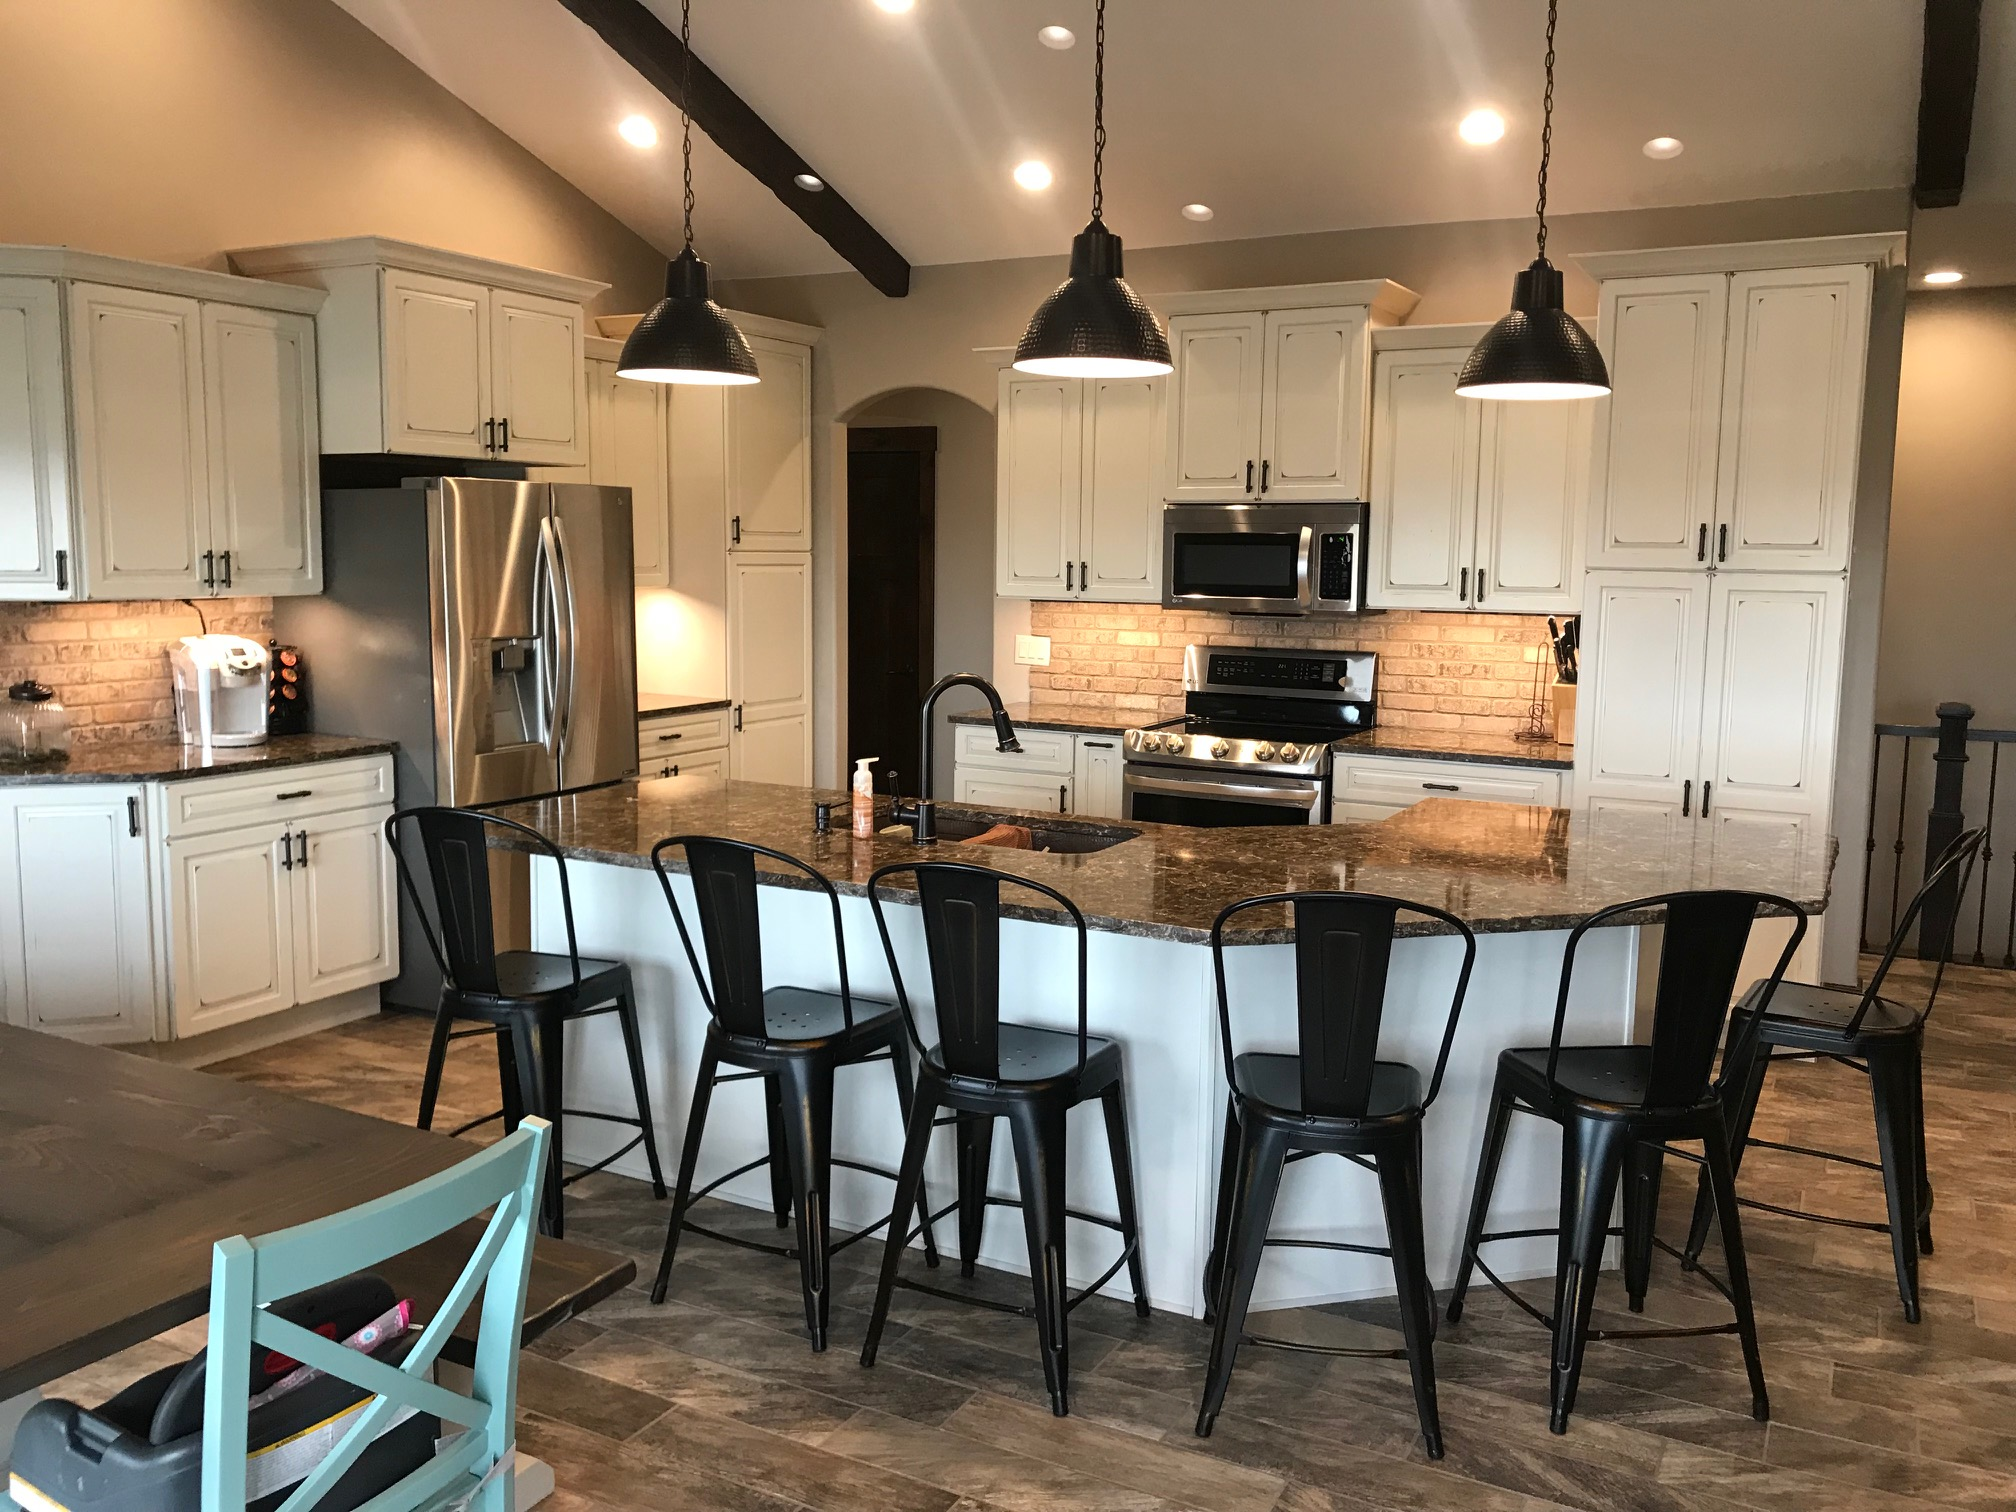 Remodeling contractor residential home lincoln ne t for Kitchen remodeling lincoln ne